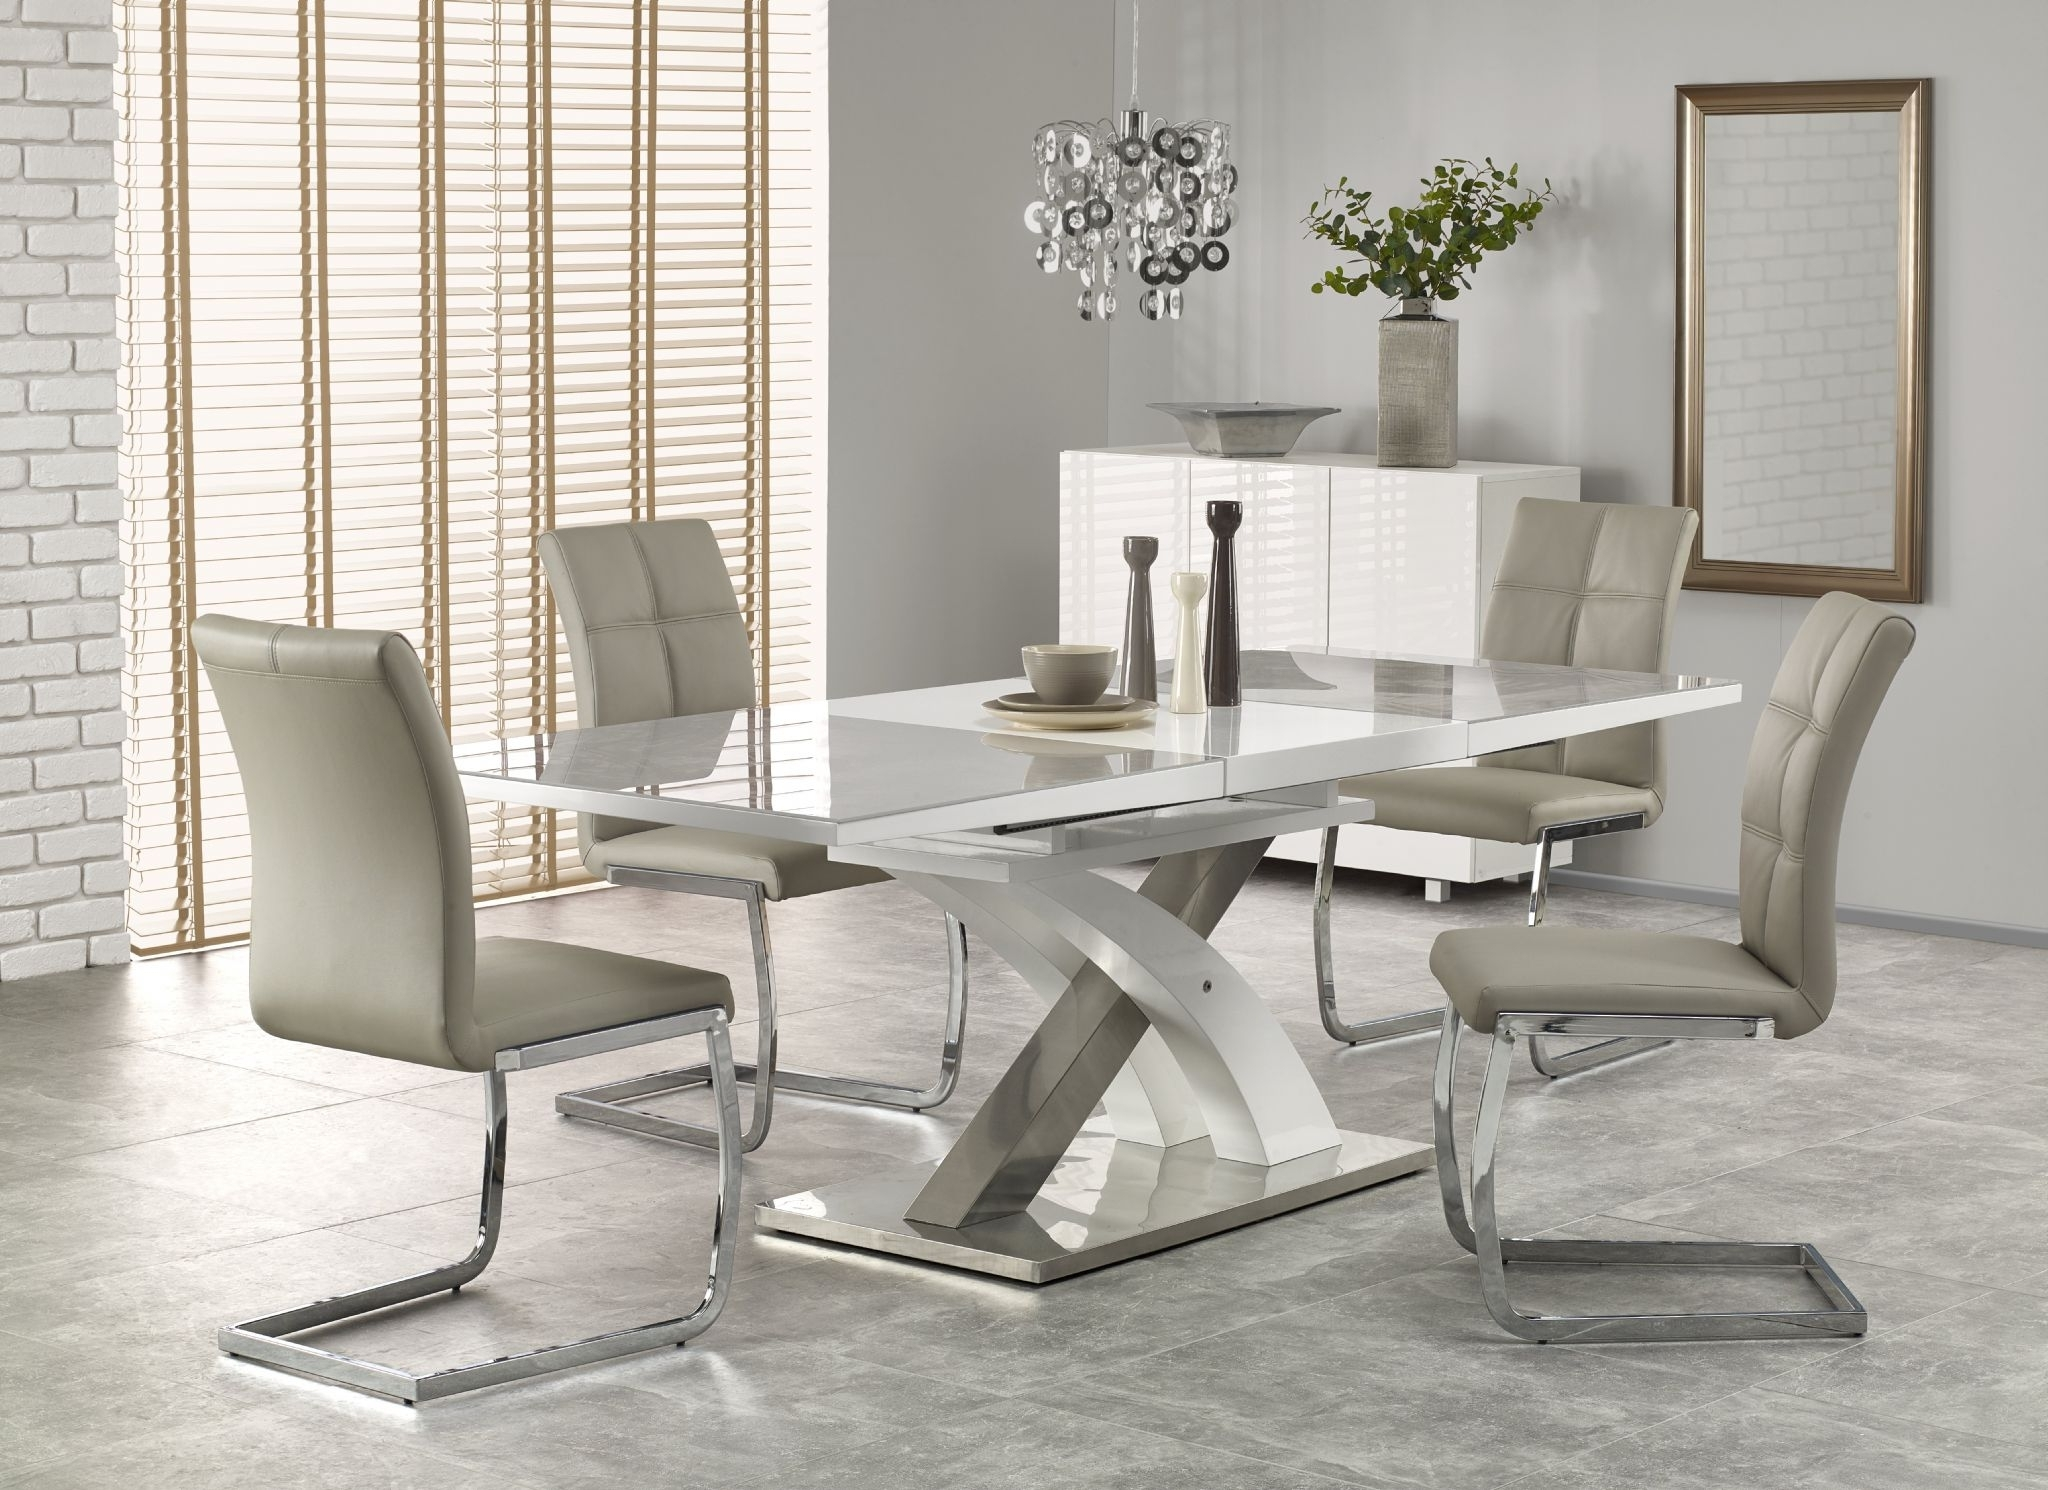 2017 White Gloss And Glass Dining Tables with regard to Harmony White High Gloss & Grey Glass Extendable Dining Table